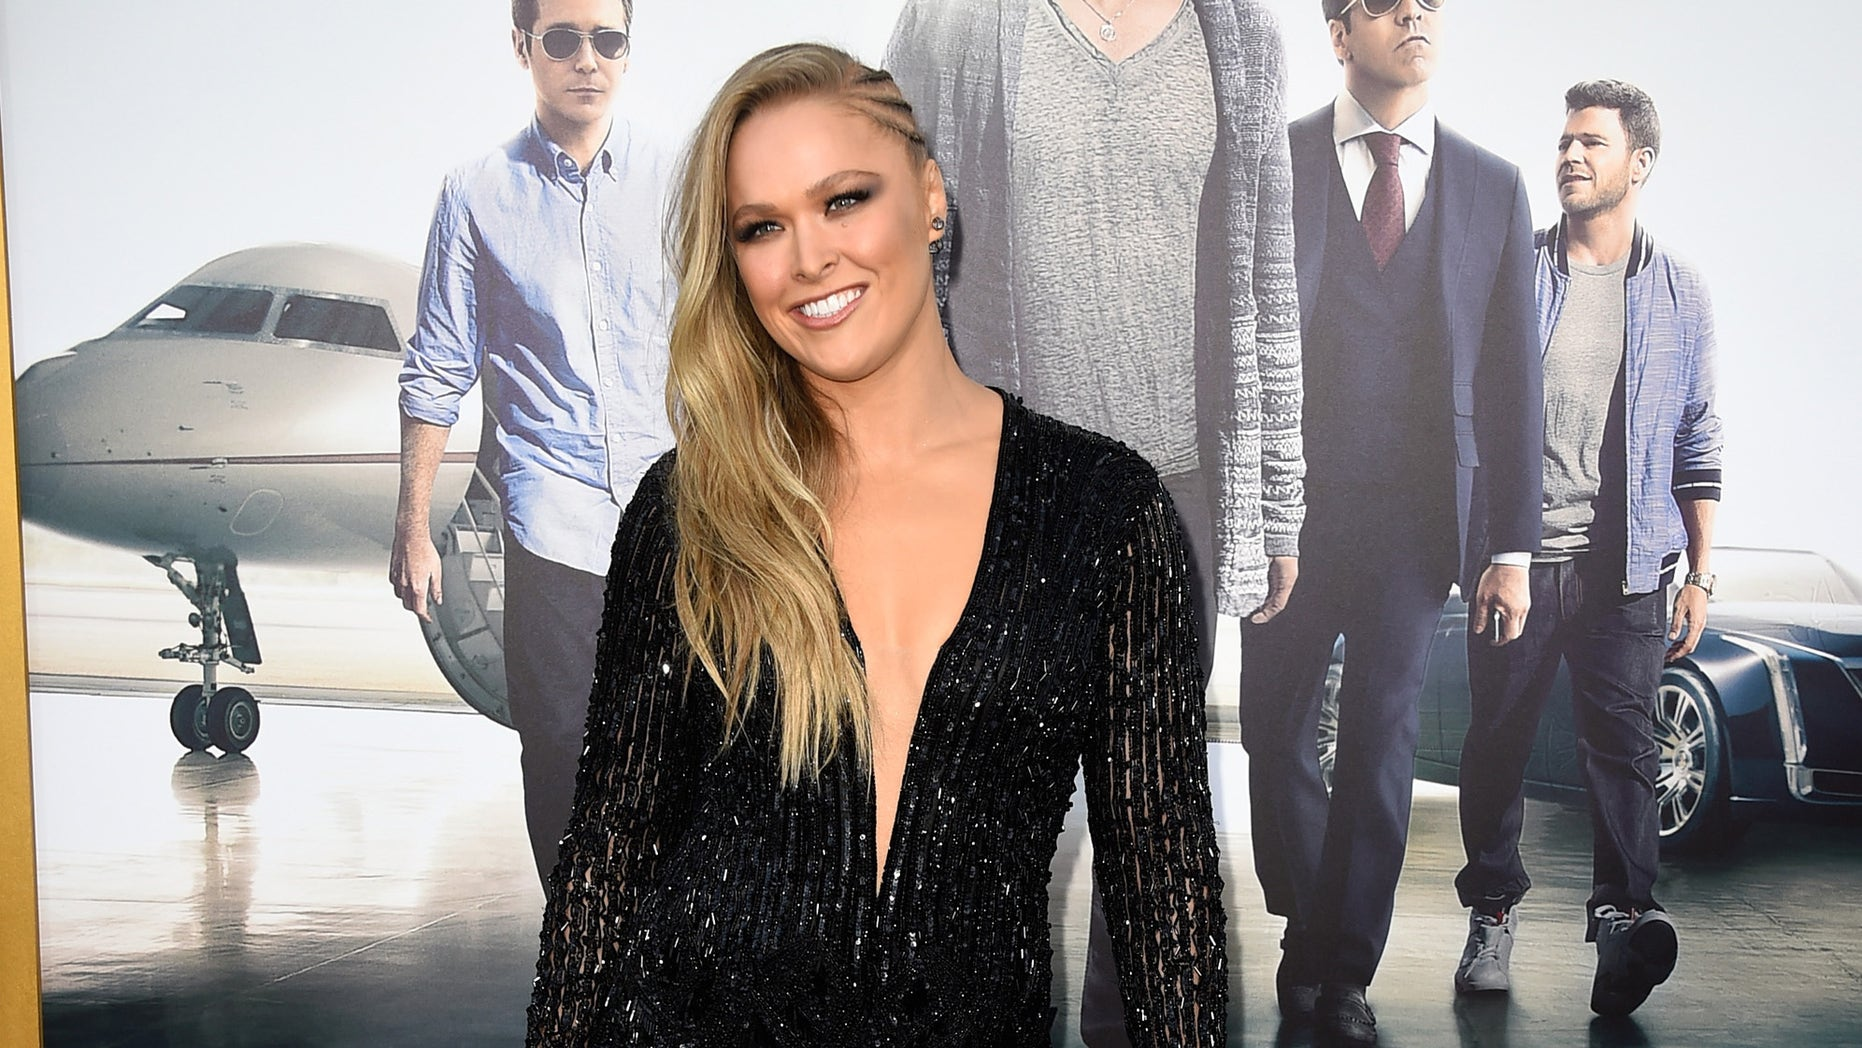 """WESTWOOD, CA - JUNE 01:  Actress Ronda Rousey attends the premiere of Warner Bros. Pictures' """"Entourage"""" at Regency Village Theatre on June 1, 2015 in Westwood, California.  (Photo by Frazer Harrison/Getty Images)"""